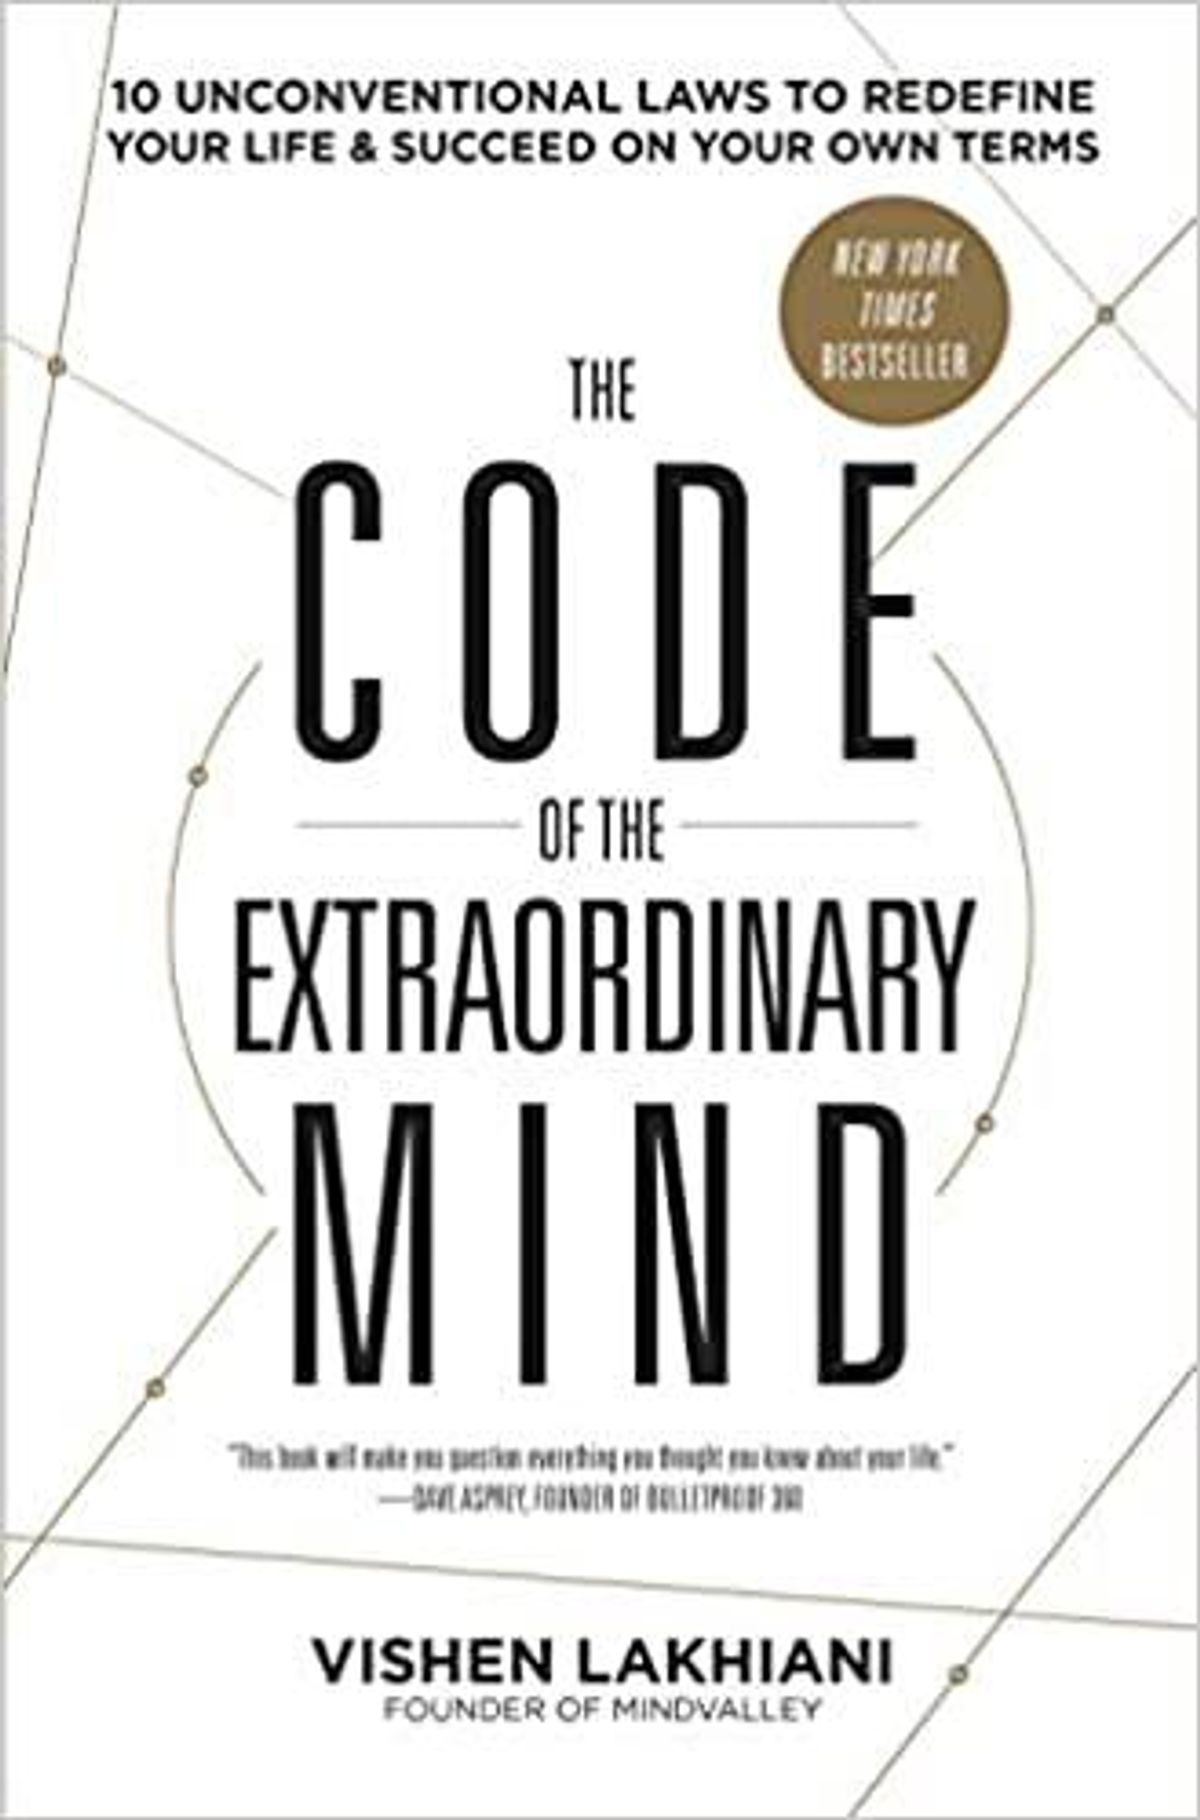 vishen lakhiani the code of the extraordinary mind 10 unconventional laws to redefine your life and succeed on your own terms